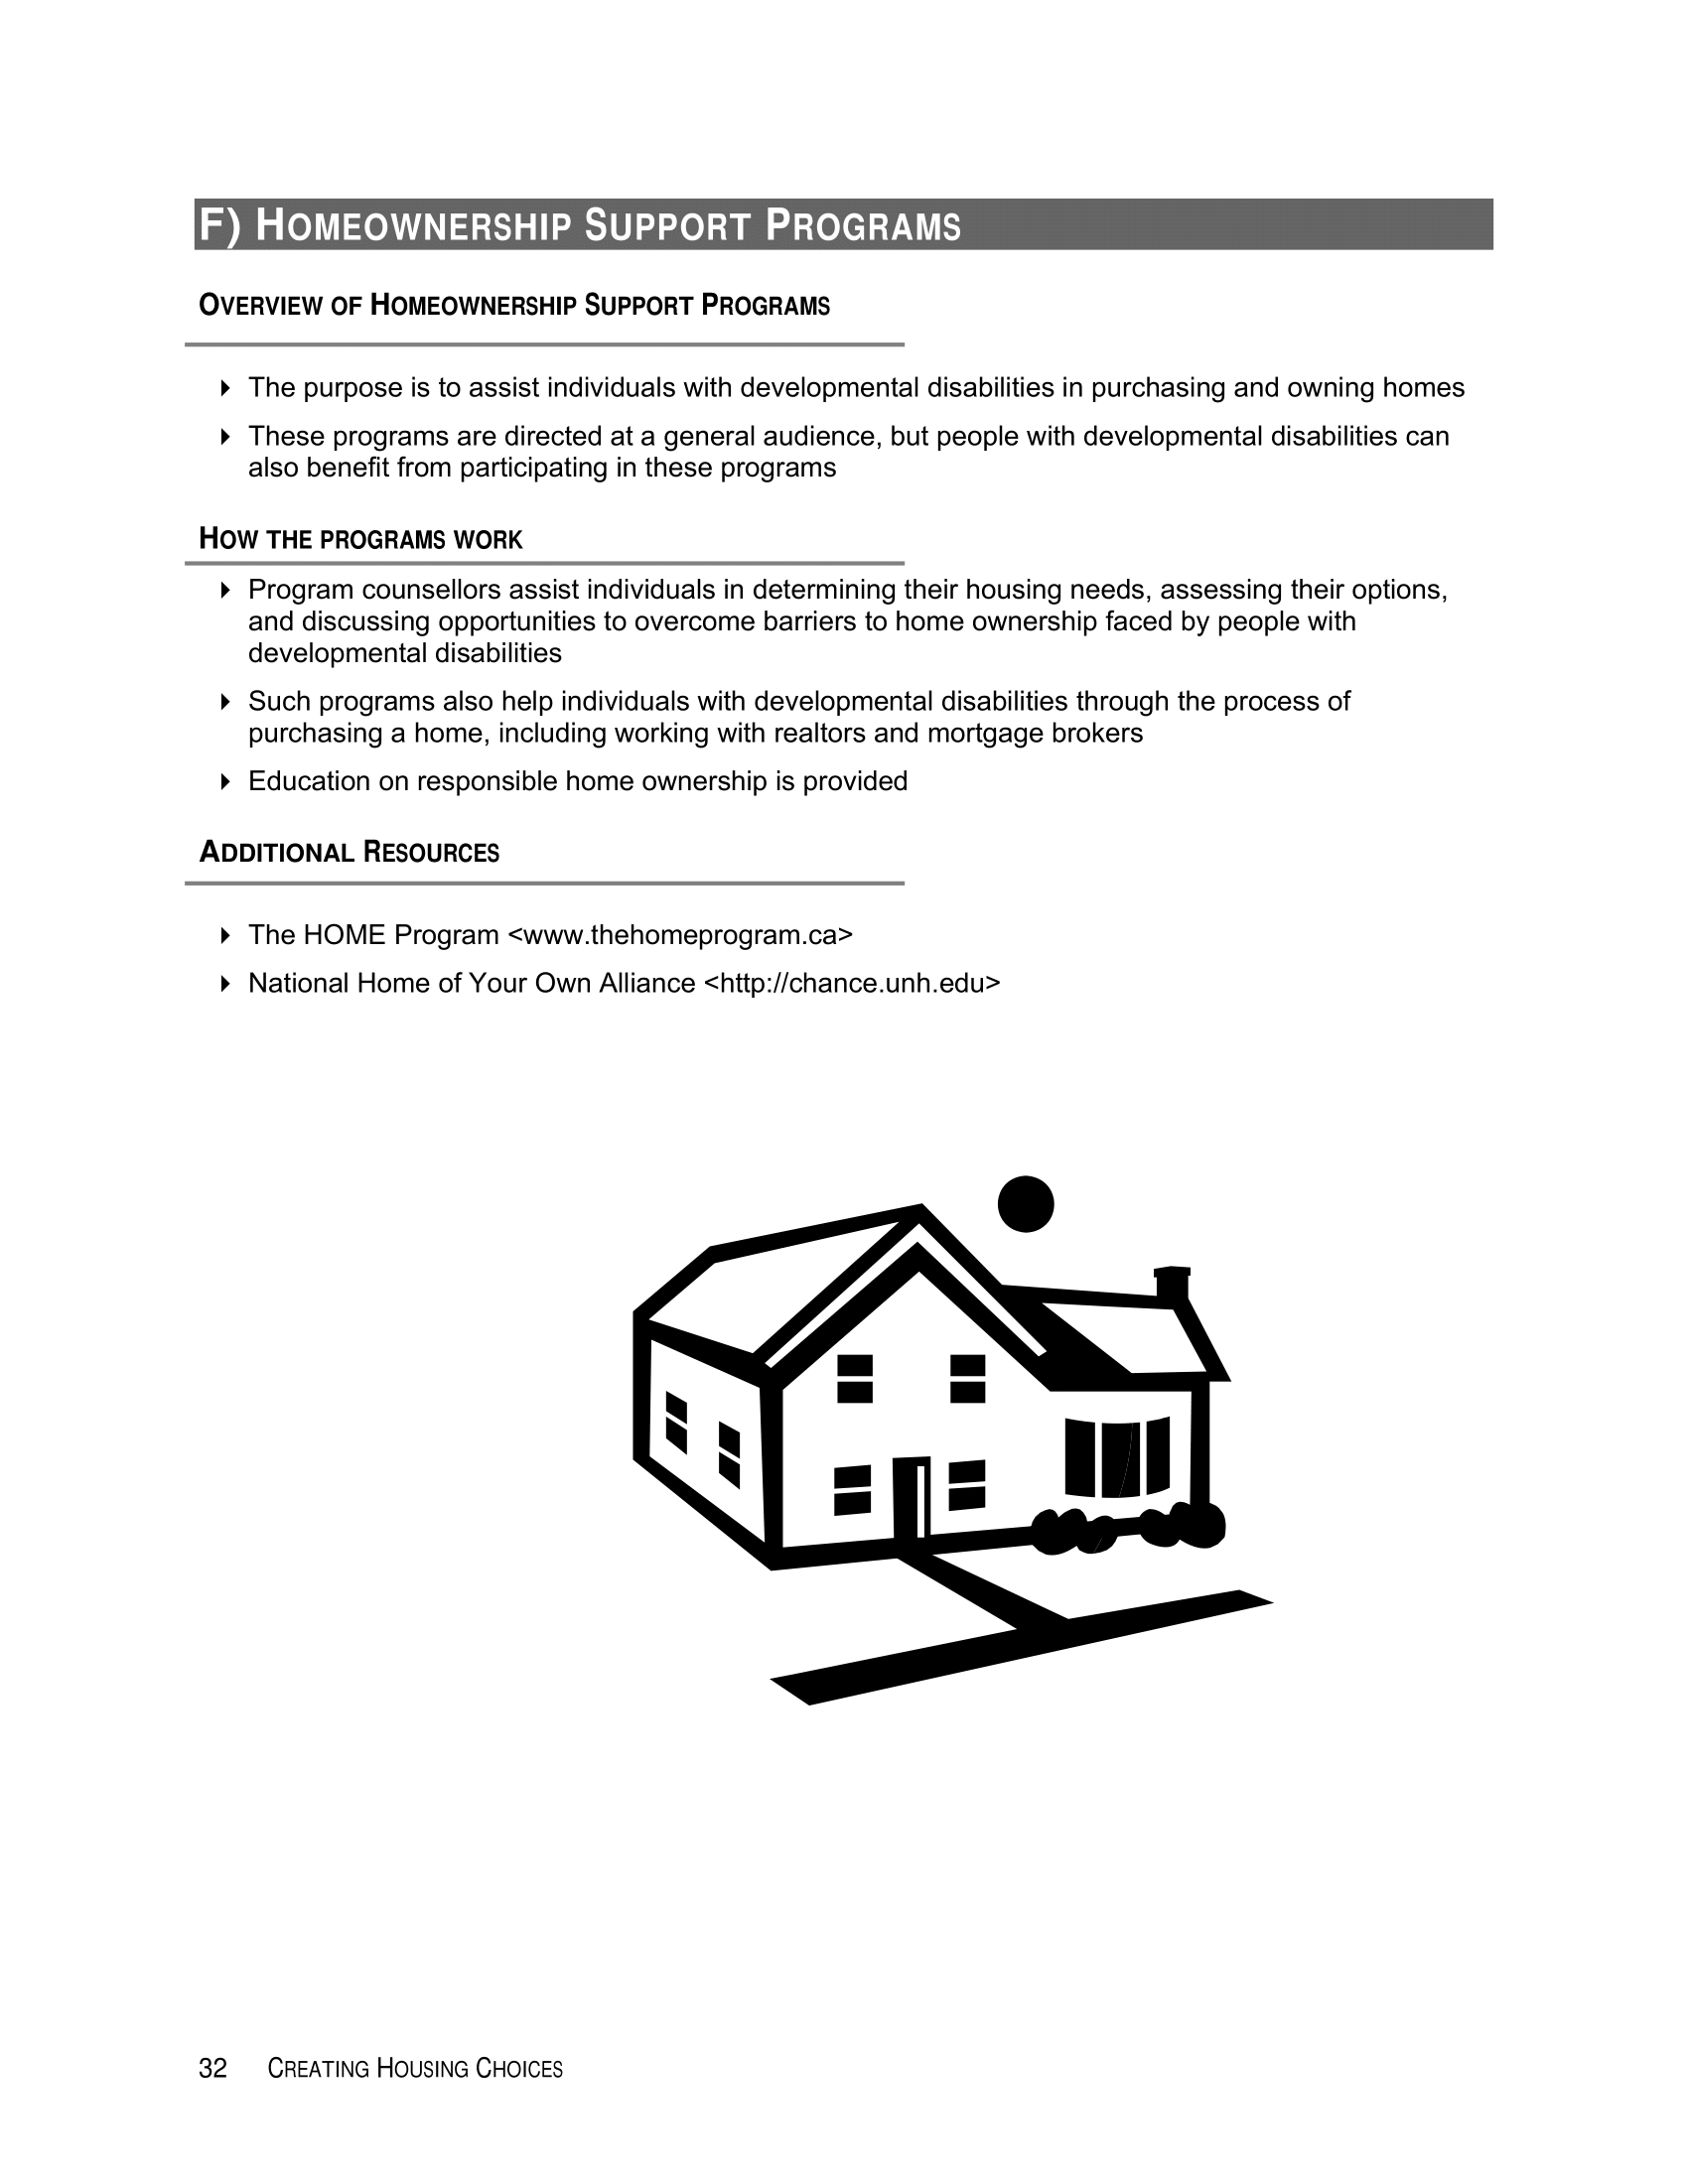 Creating Housing Choices - 2006-33.png